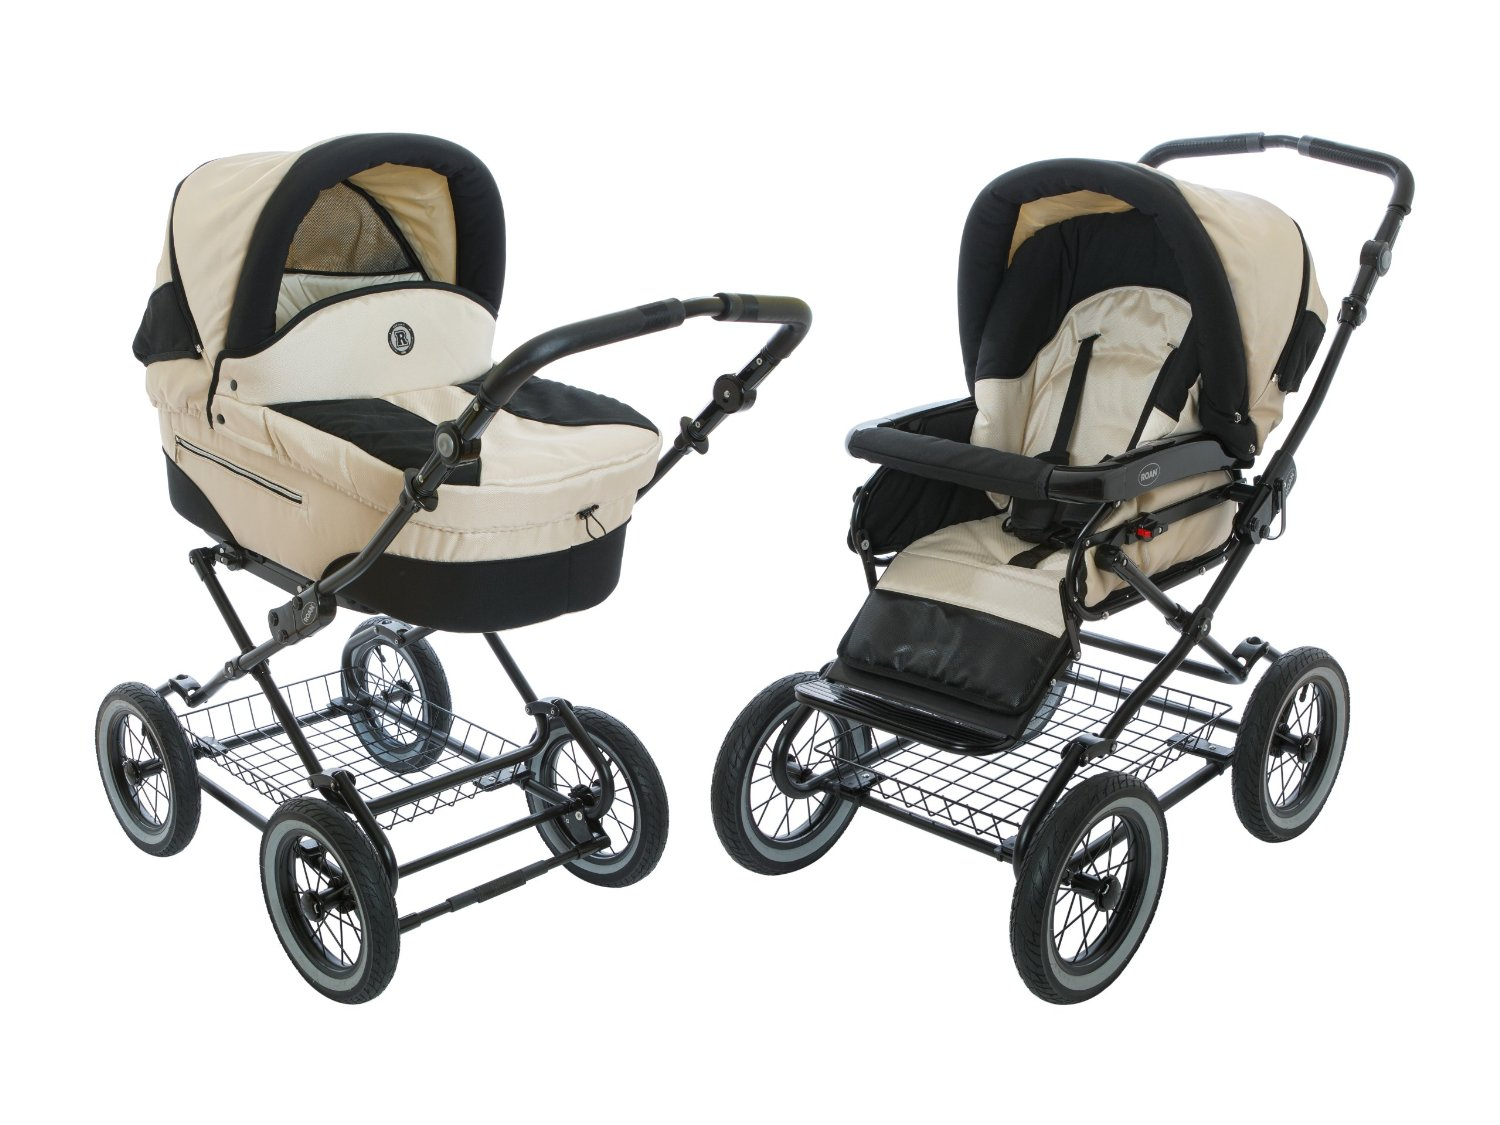 How to choose a stroller for a newborn 26